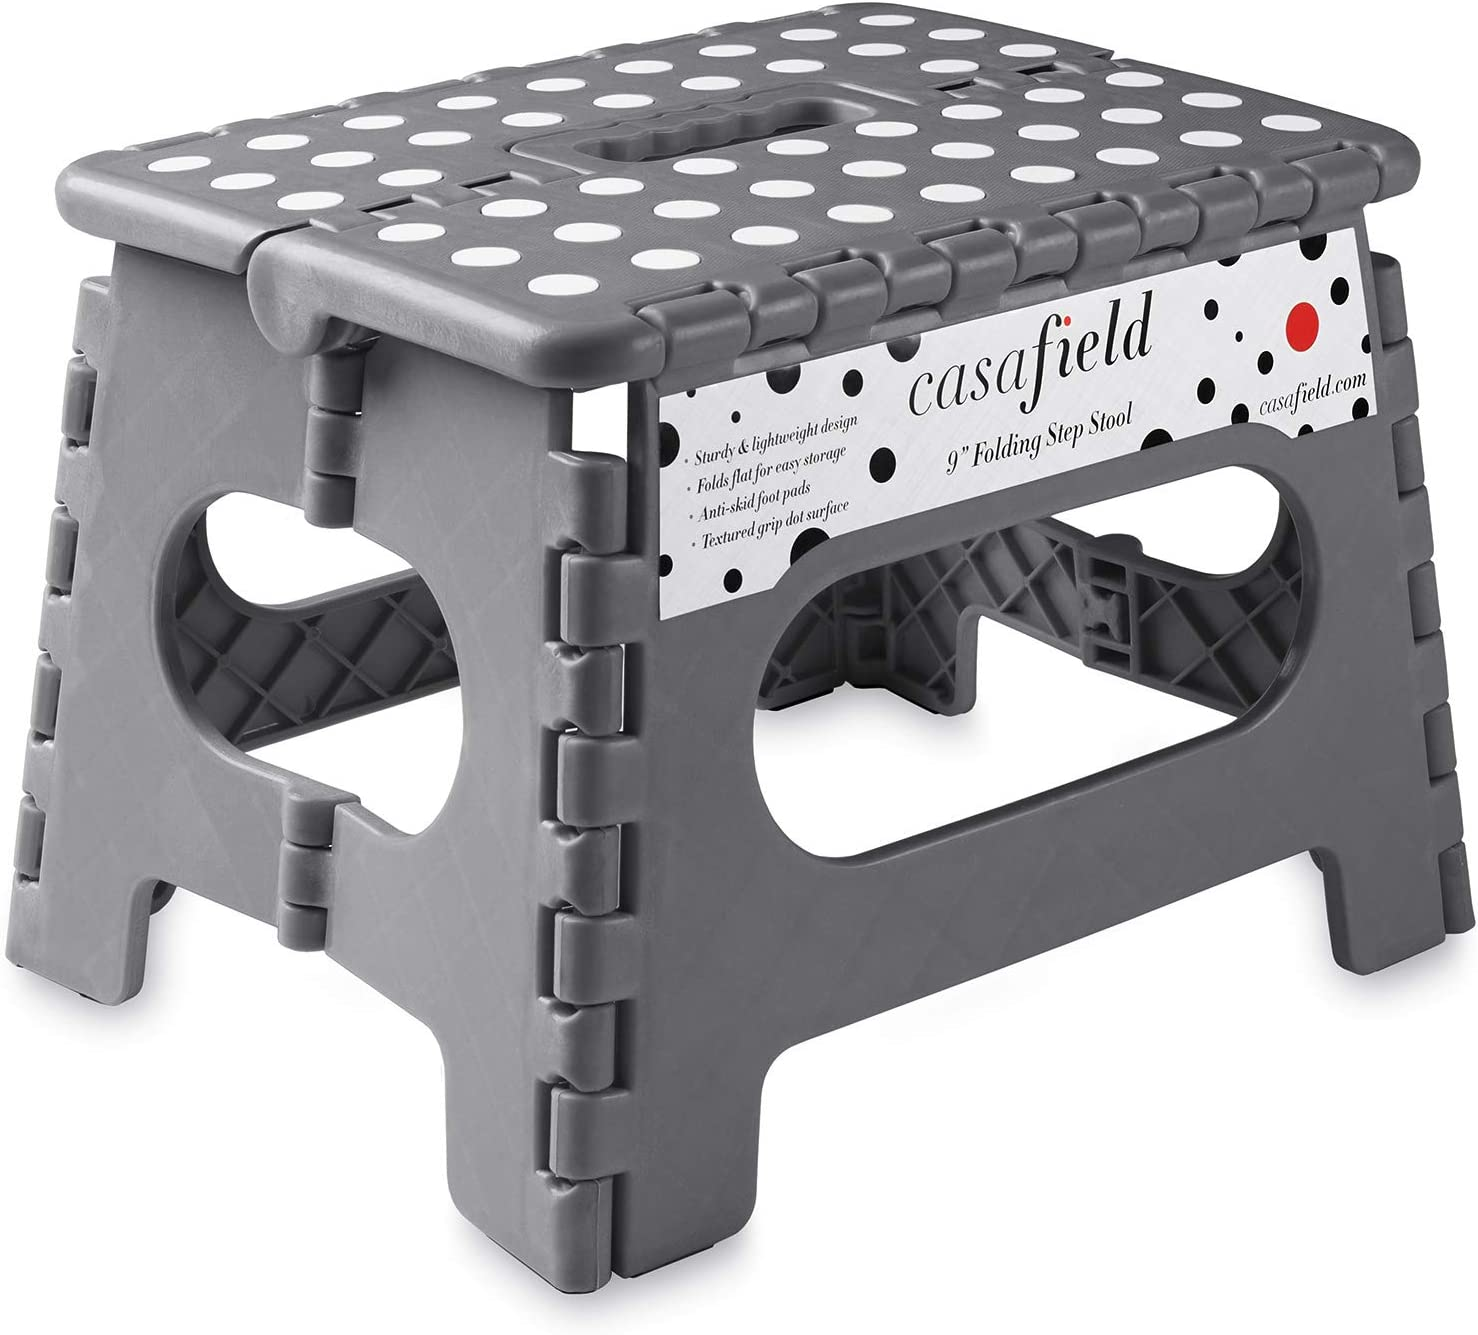 "Casafield 9"" Folding Step Stool with Handle, Gray - Portable Collapsible Small Plastic Foot Stool for Kids and Adults - Use in The Kitchen, Bathroom and Bedroom"